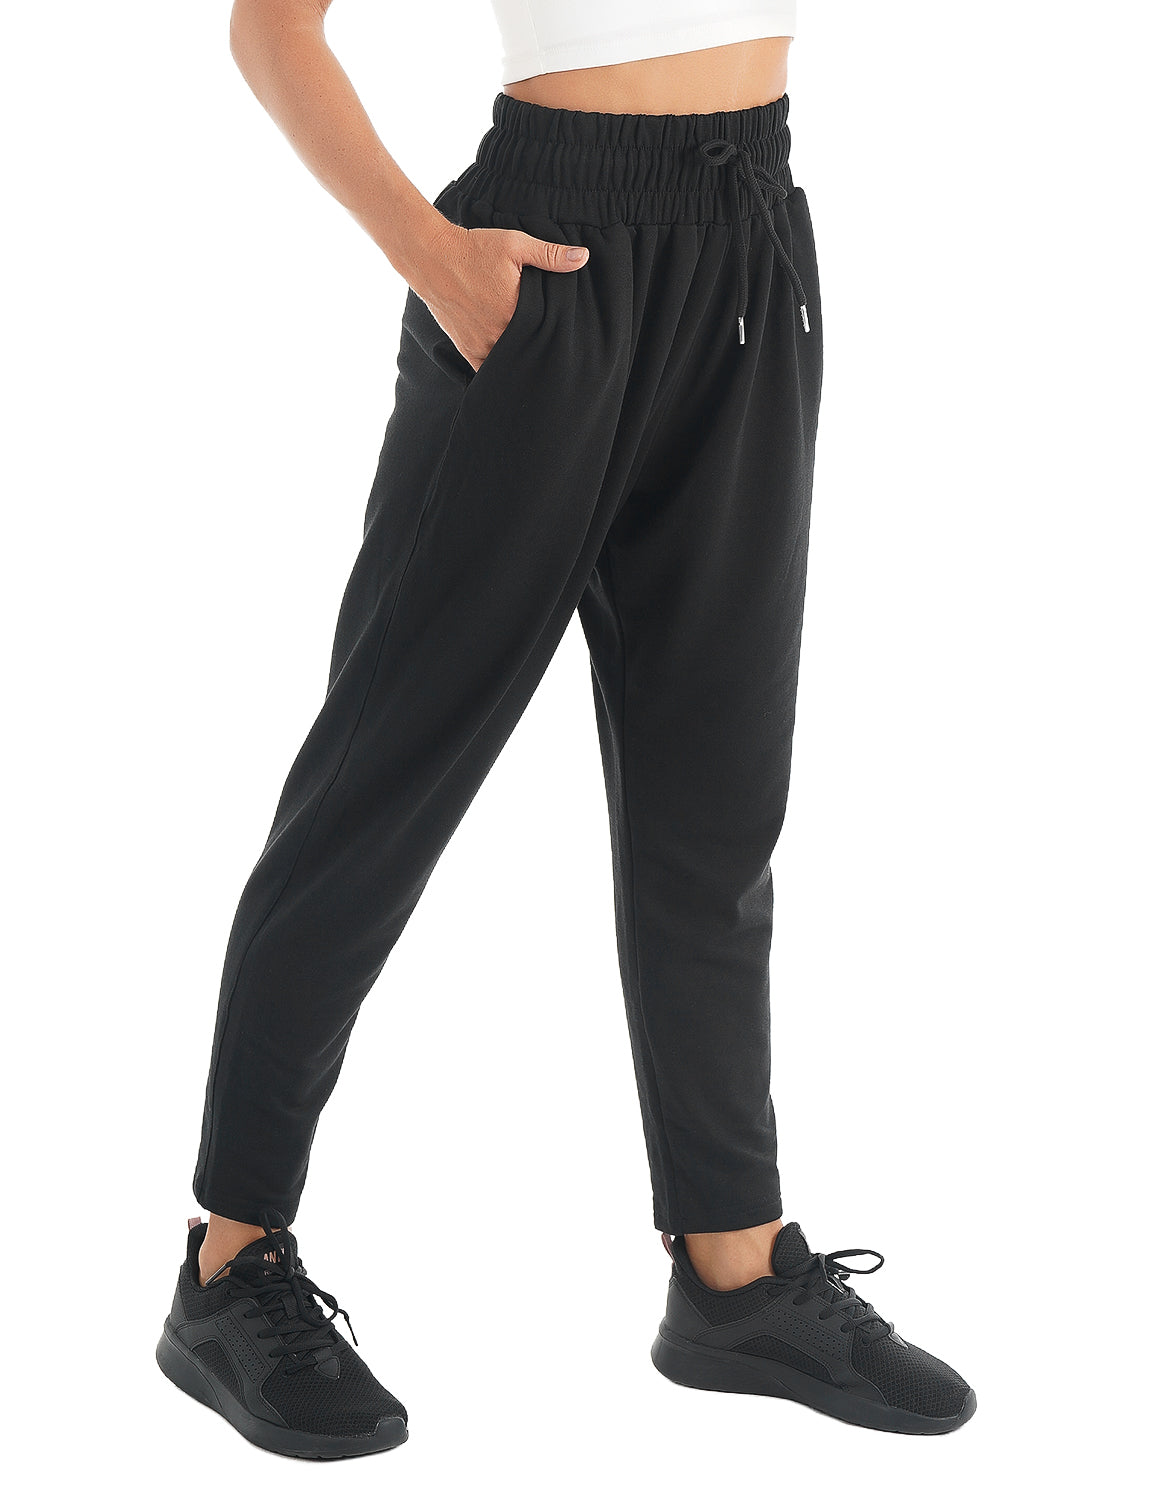 Blooming Jelly_Outdoor Sweatpants Casual Joggers_Black_255098_08_Women Sportswear Comfy Outfits_Bottoms_Joggers